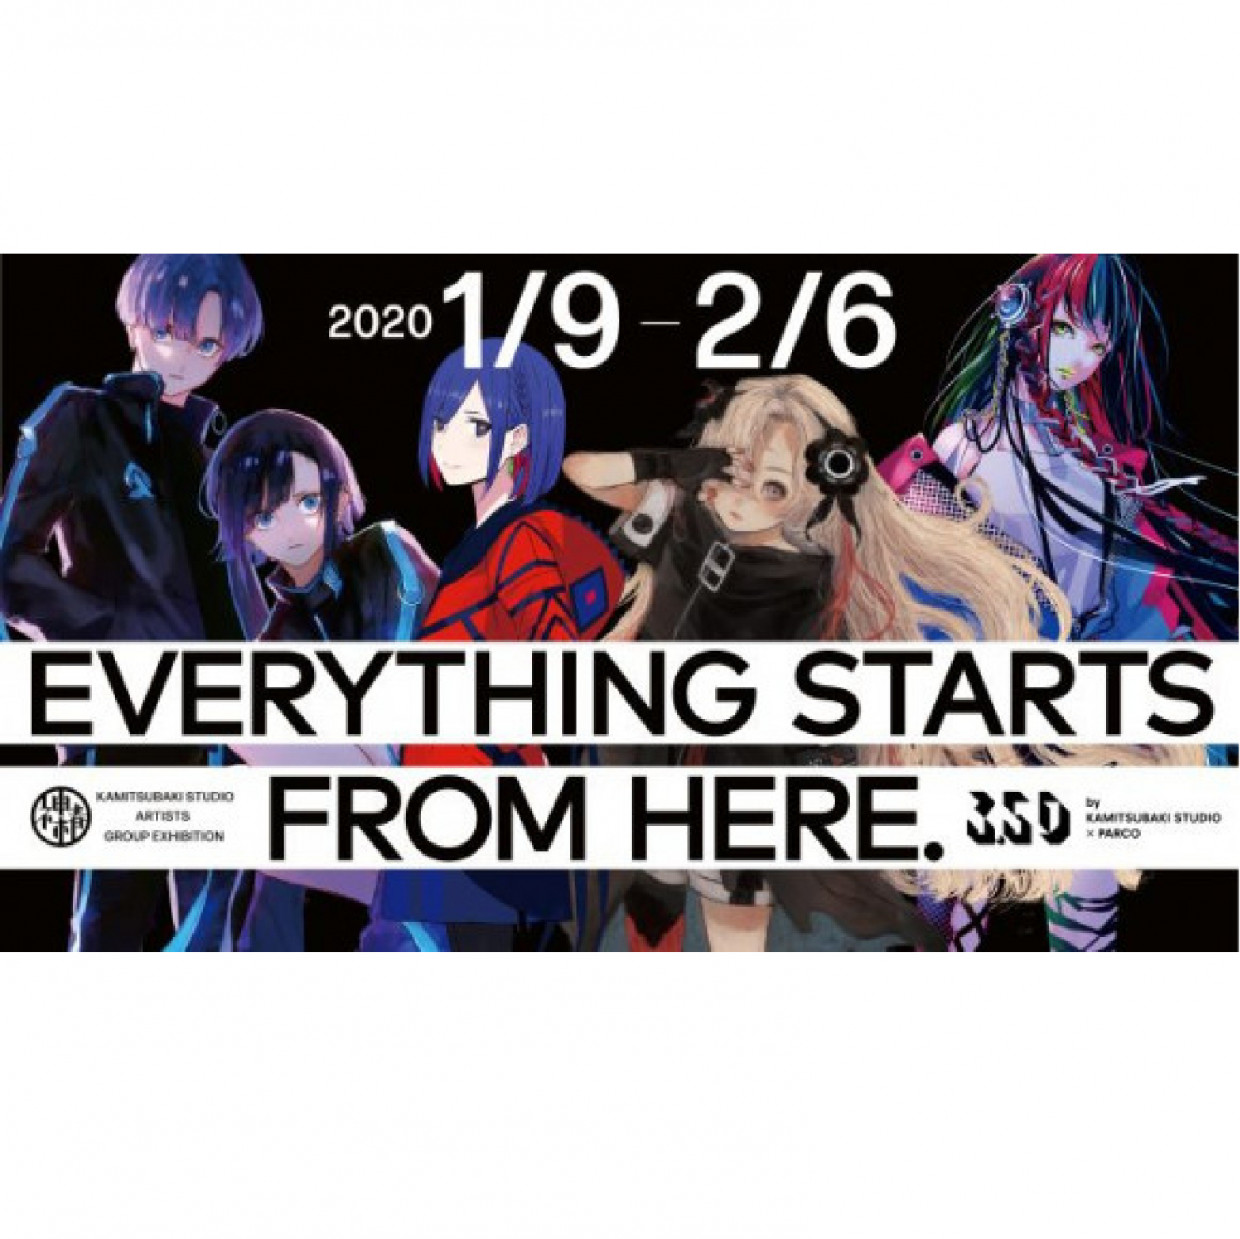 「Everything starts from here」展 開催!